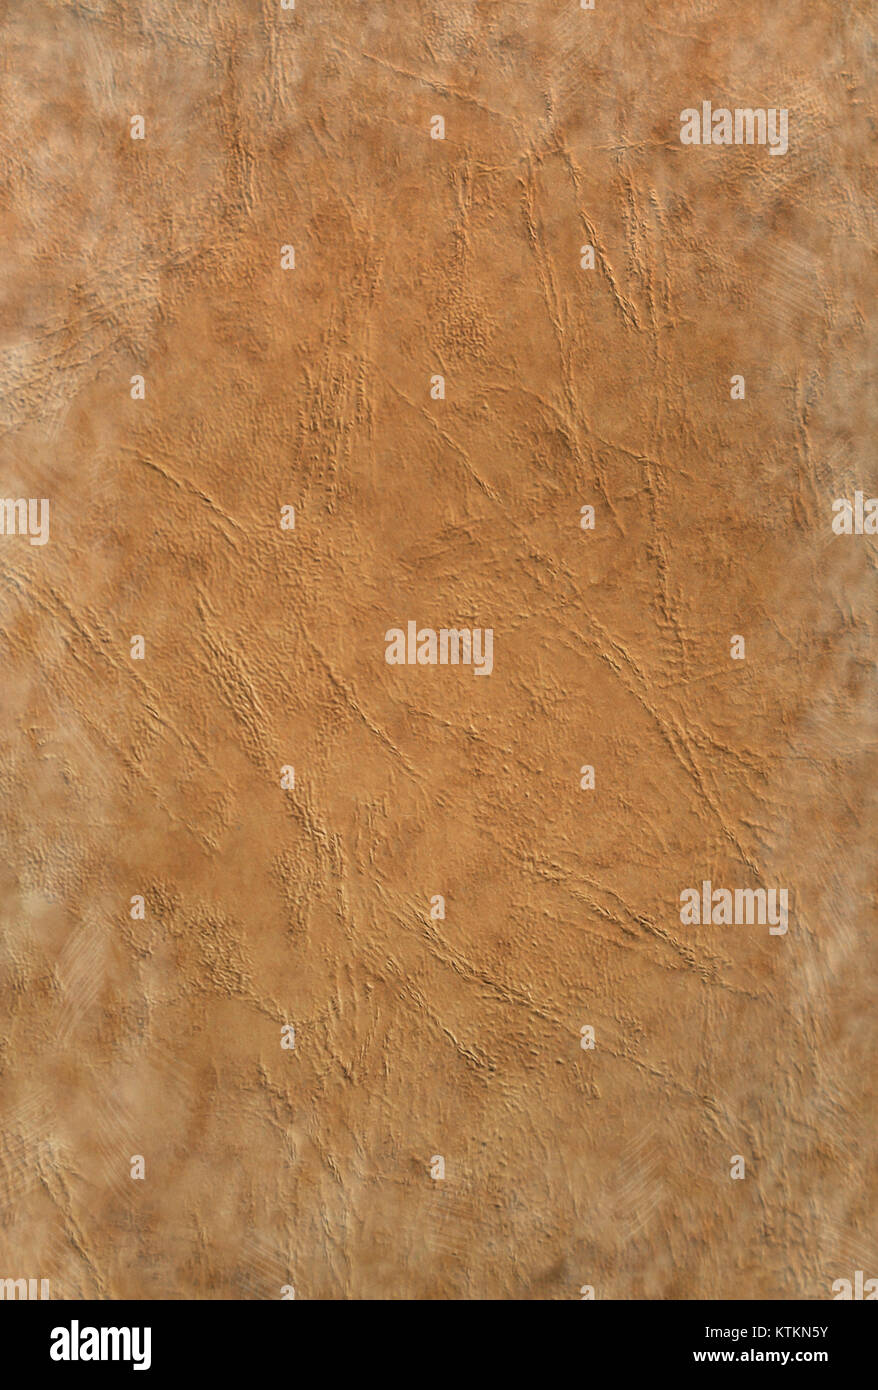 Texture  Imitation leather light brown color  Background